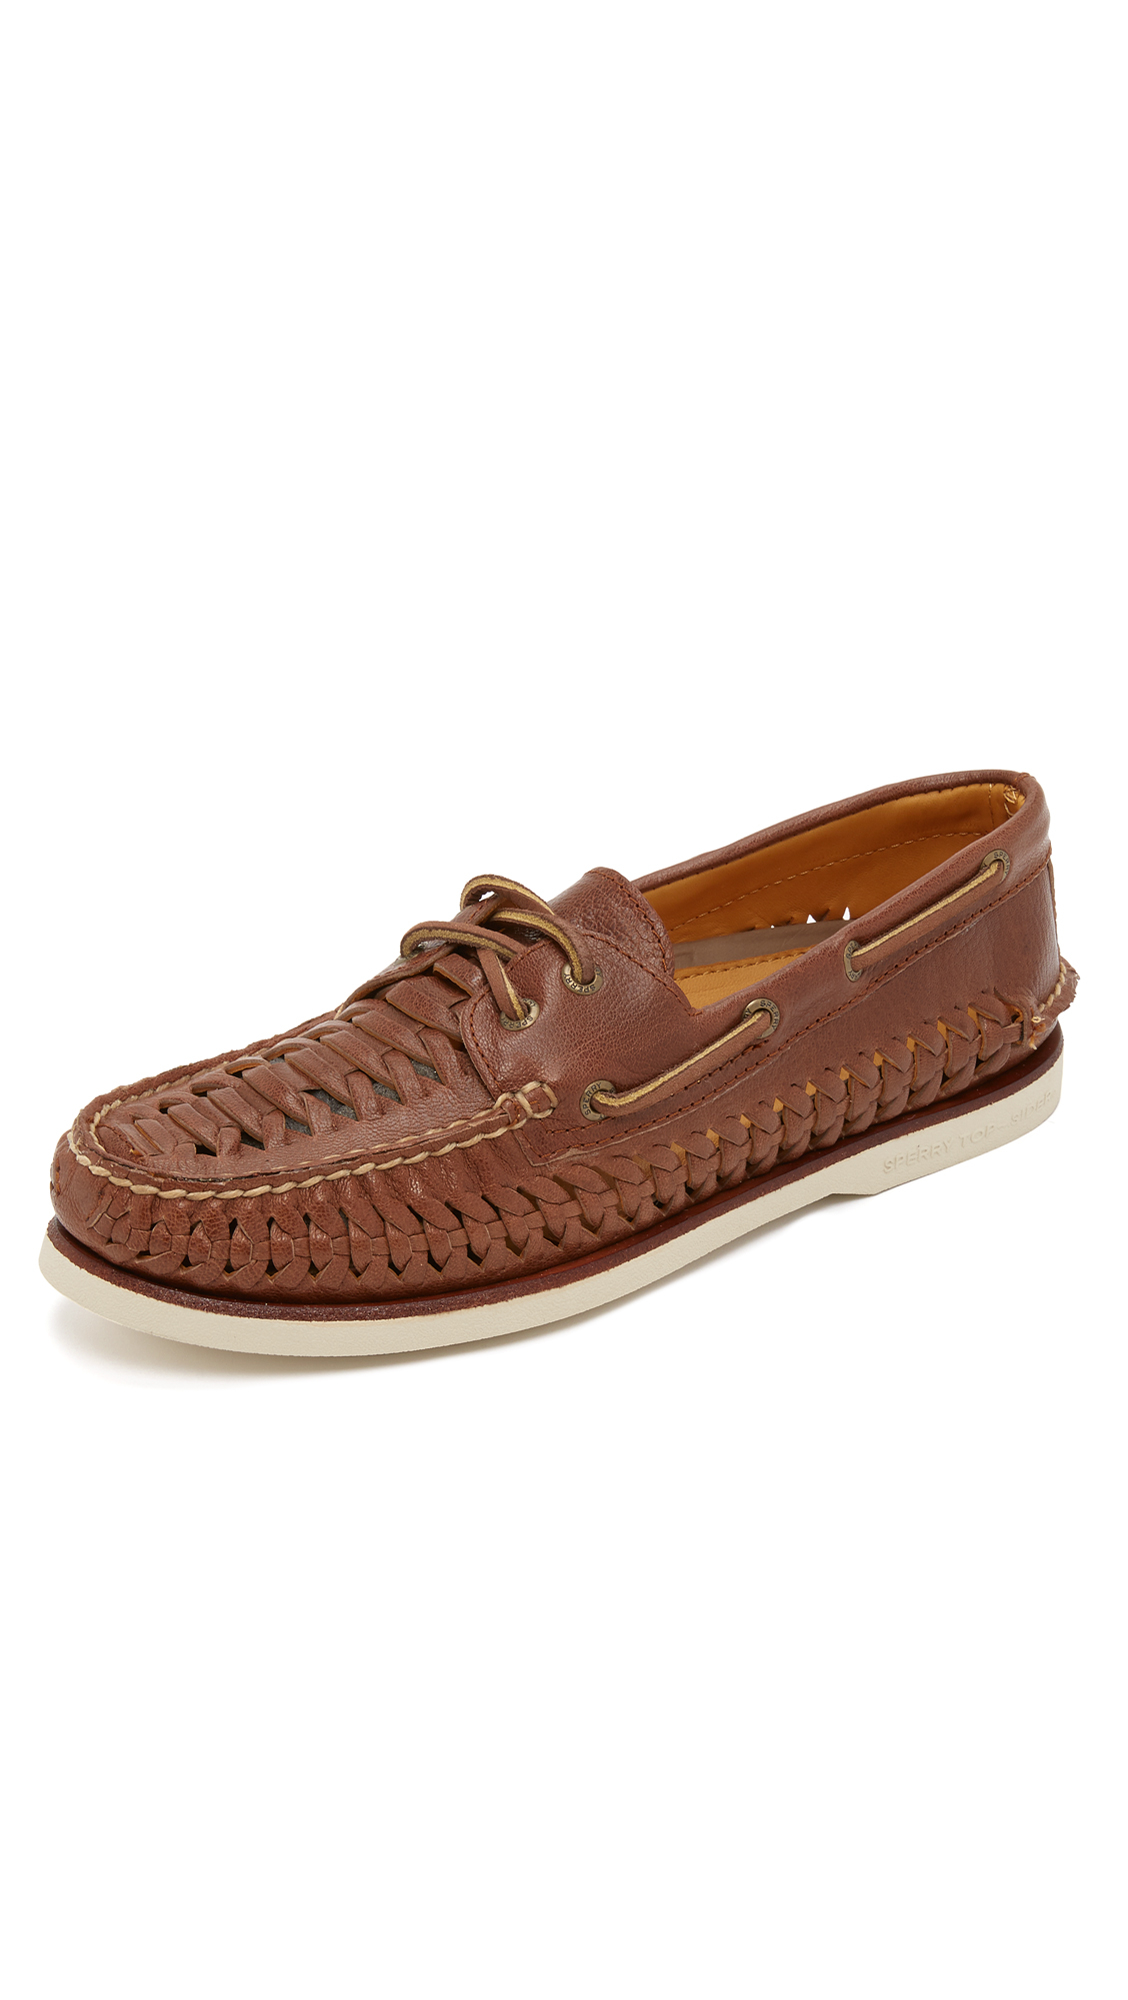 Woven Leather Boat Shoes